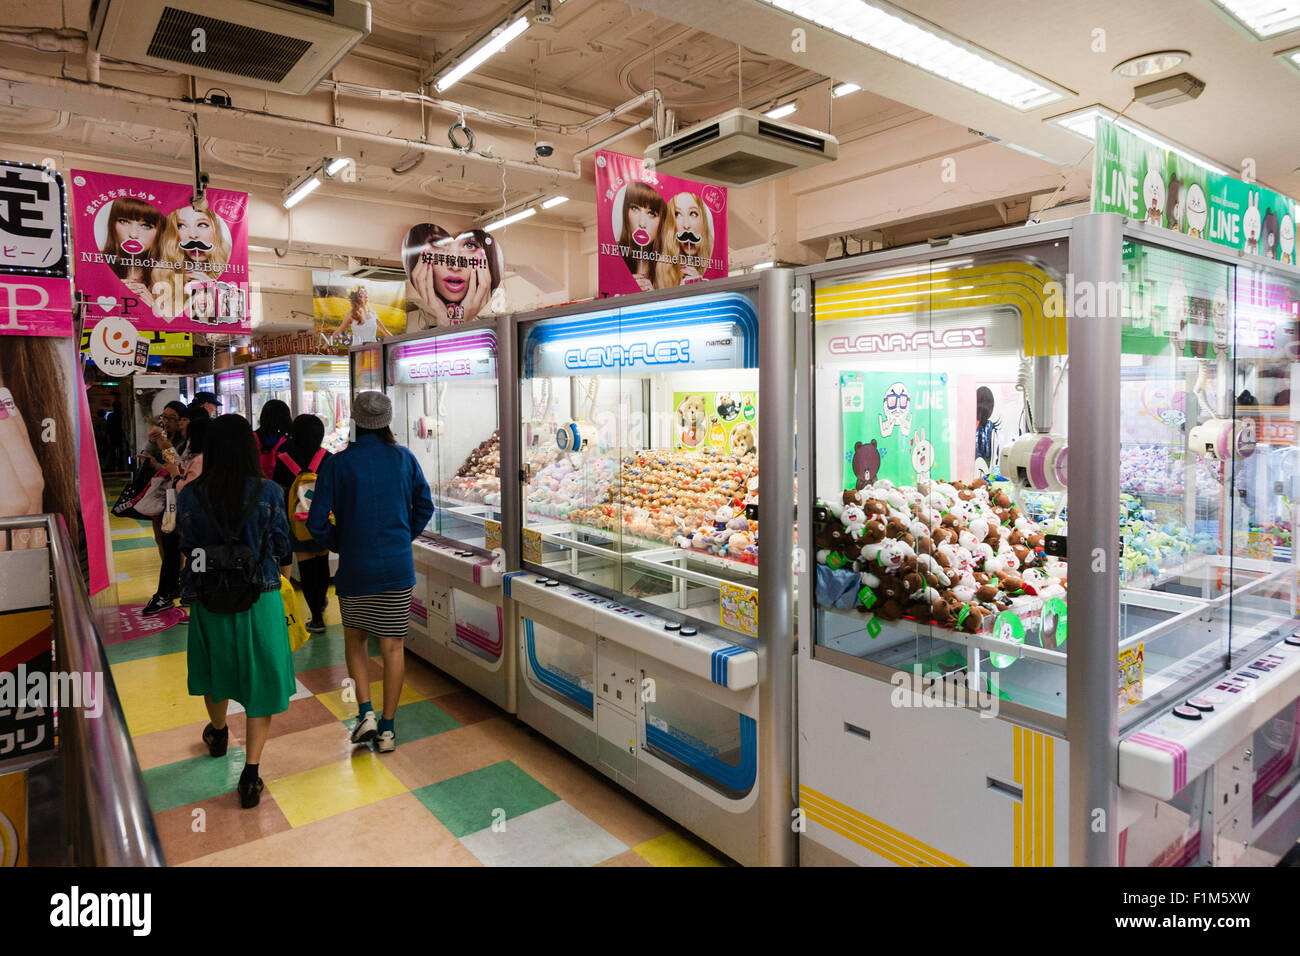 Japan, Osaka, Dotonbori. Interior of games arcade, with rows of game machines and people - Stock Image